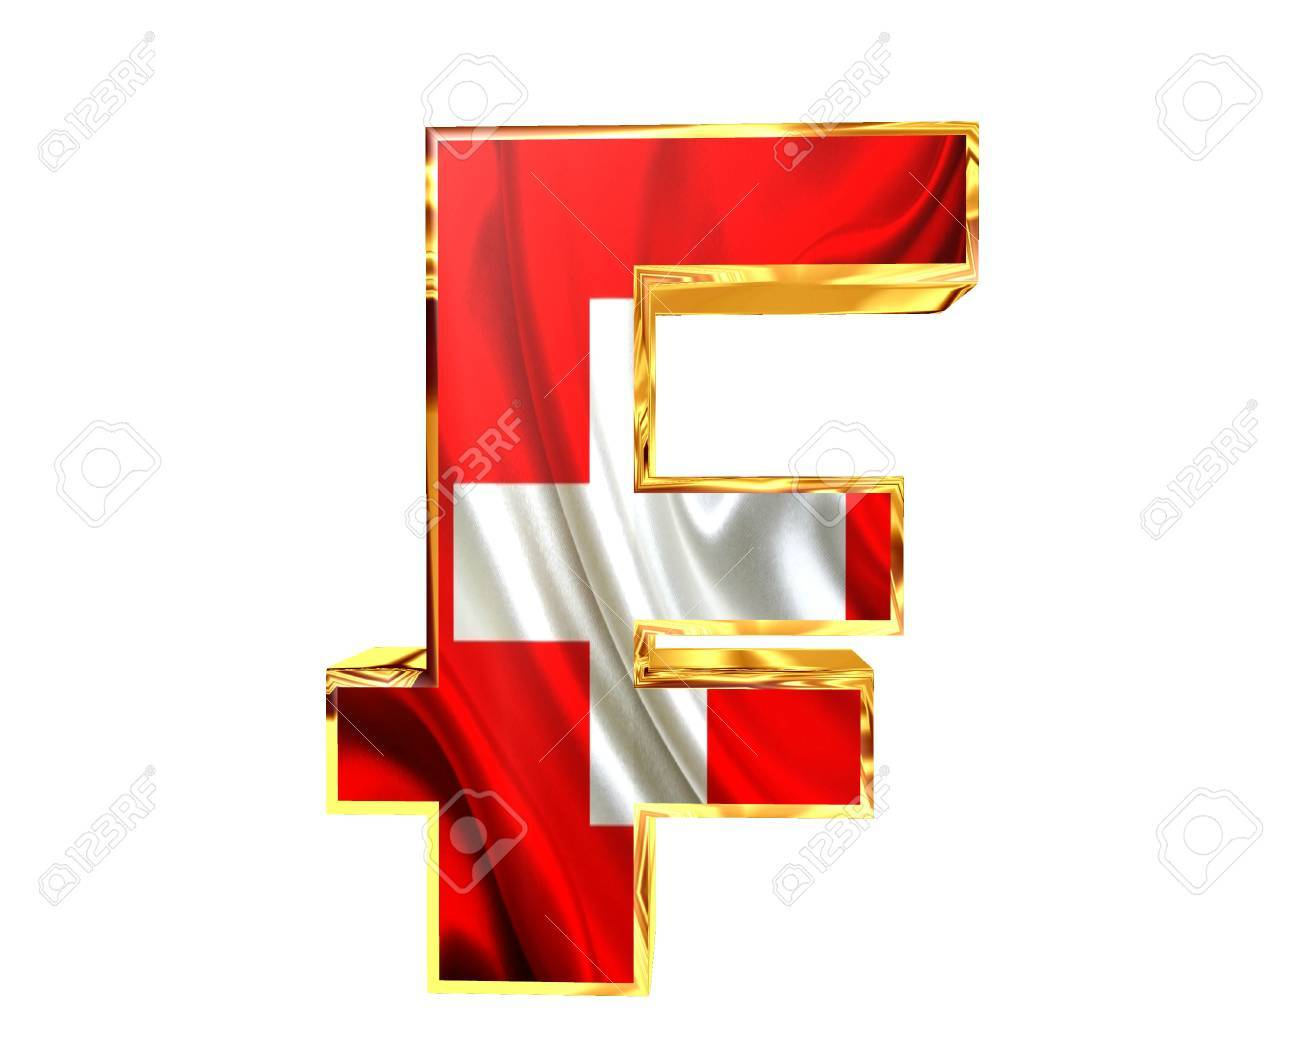 Symbol of swiss franc on a white background stock photo picture and symbol of swiss franc on a white background stock photo 63735252 buycottarizona Images